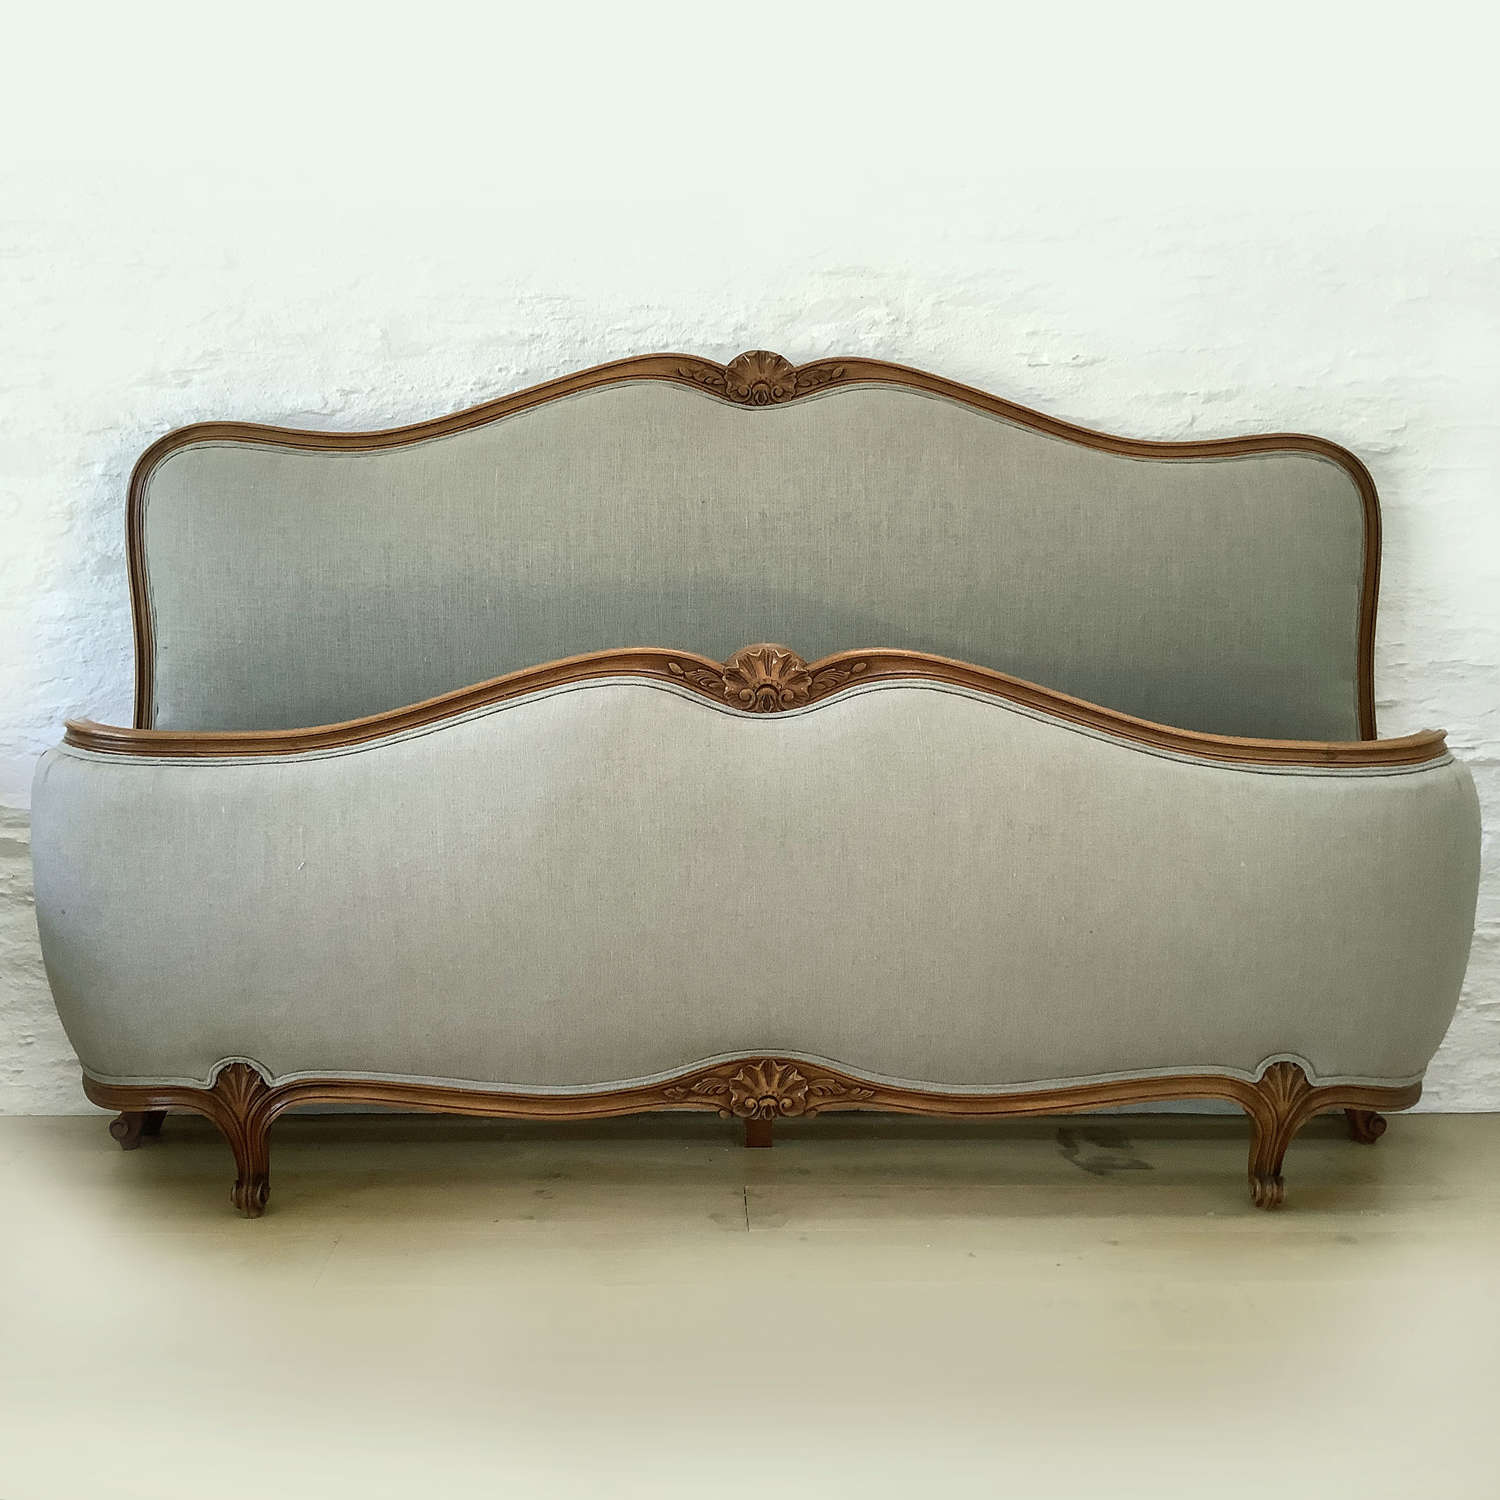 Louis XV style Super King size Bedstead